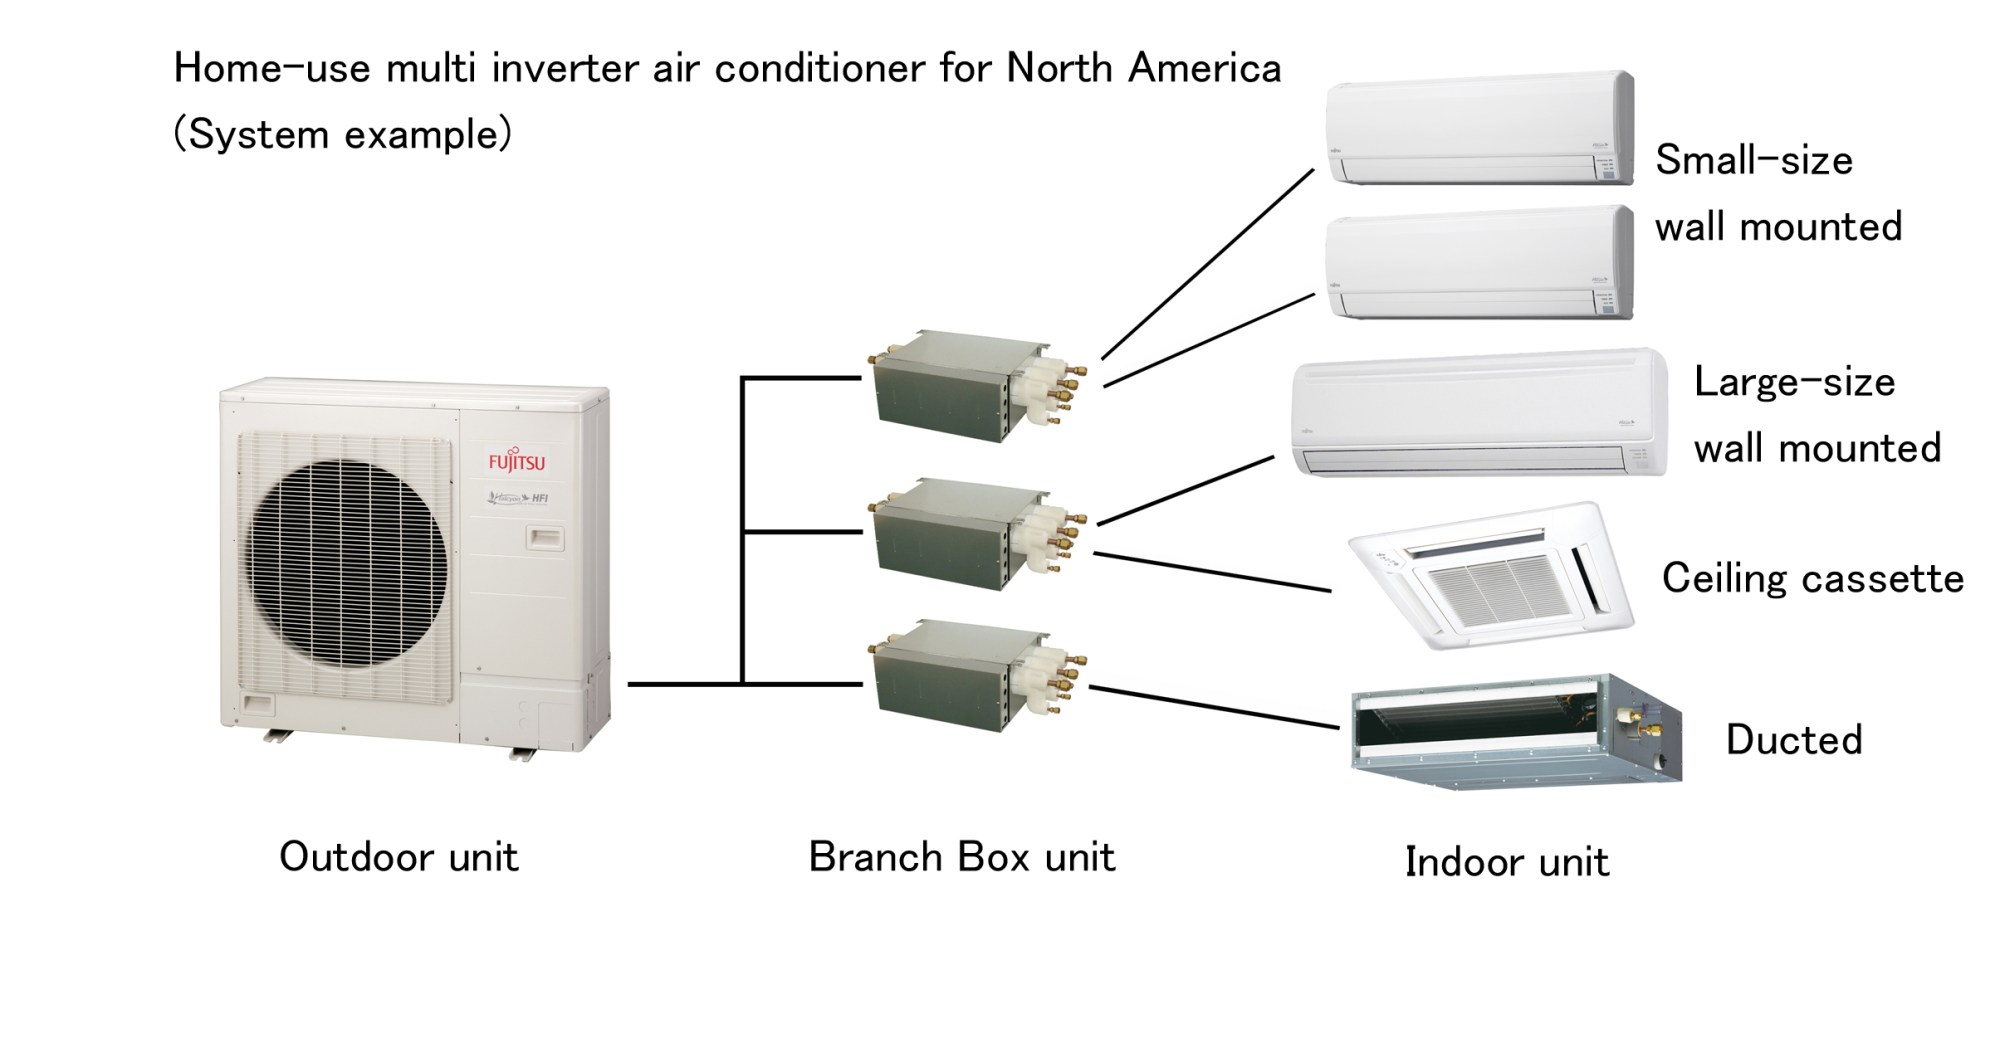 hight resolution of home use multi inverter air conditioner for north america system example jpg 627kb